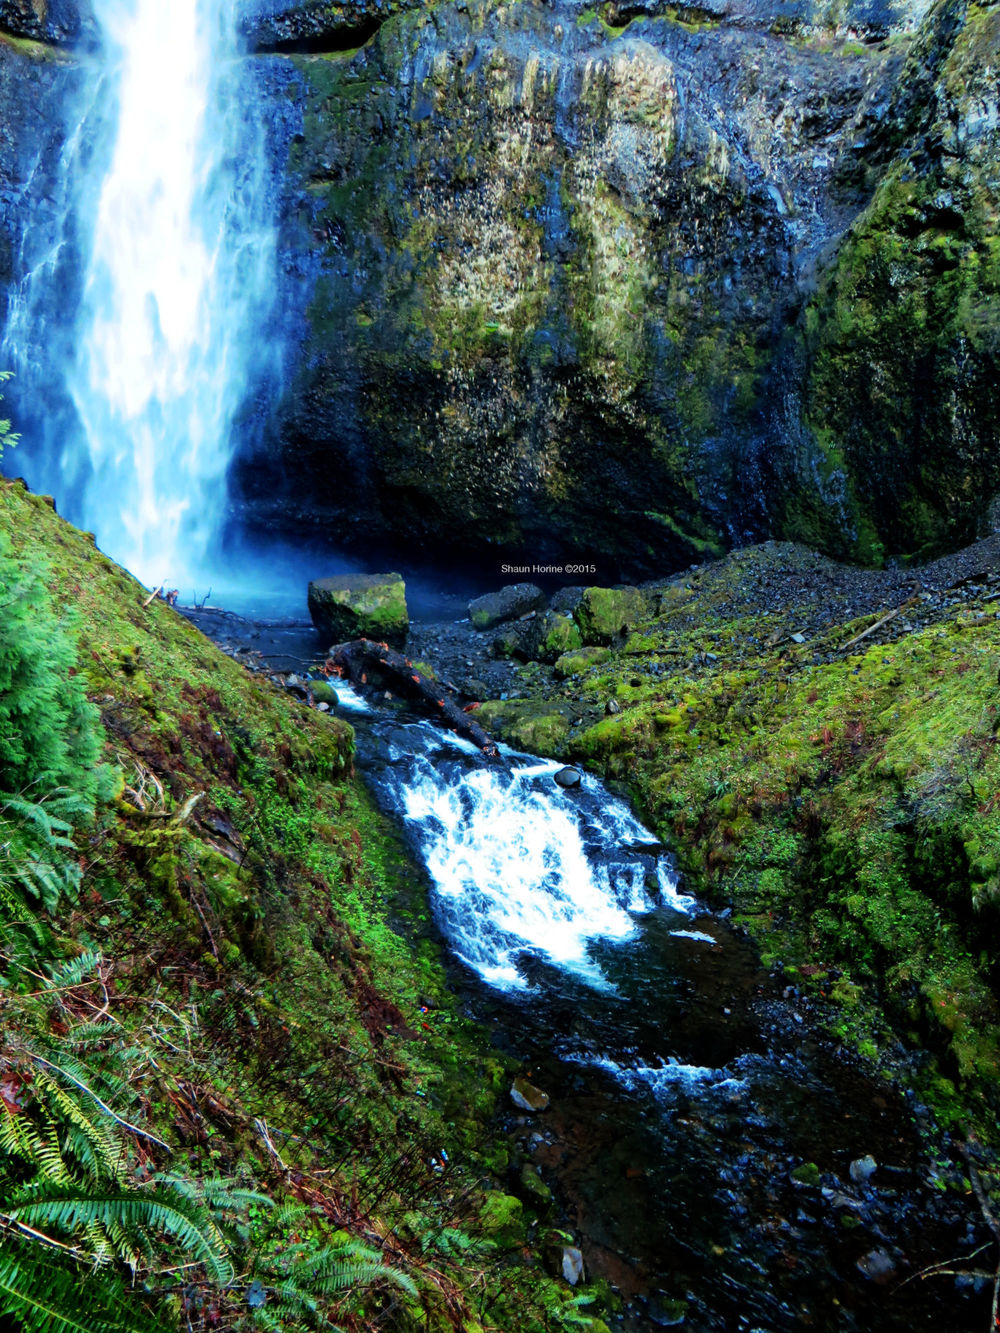 One last view of Multnomah Falls before heading out west. March 1st, 2015